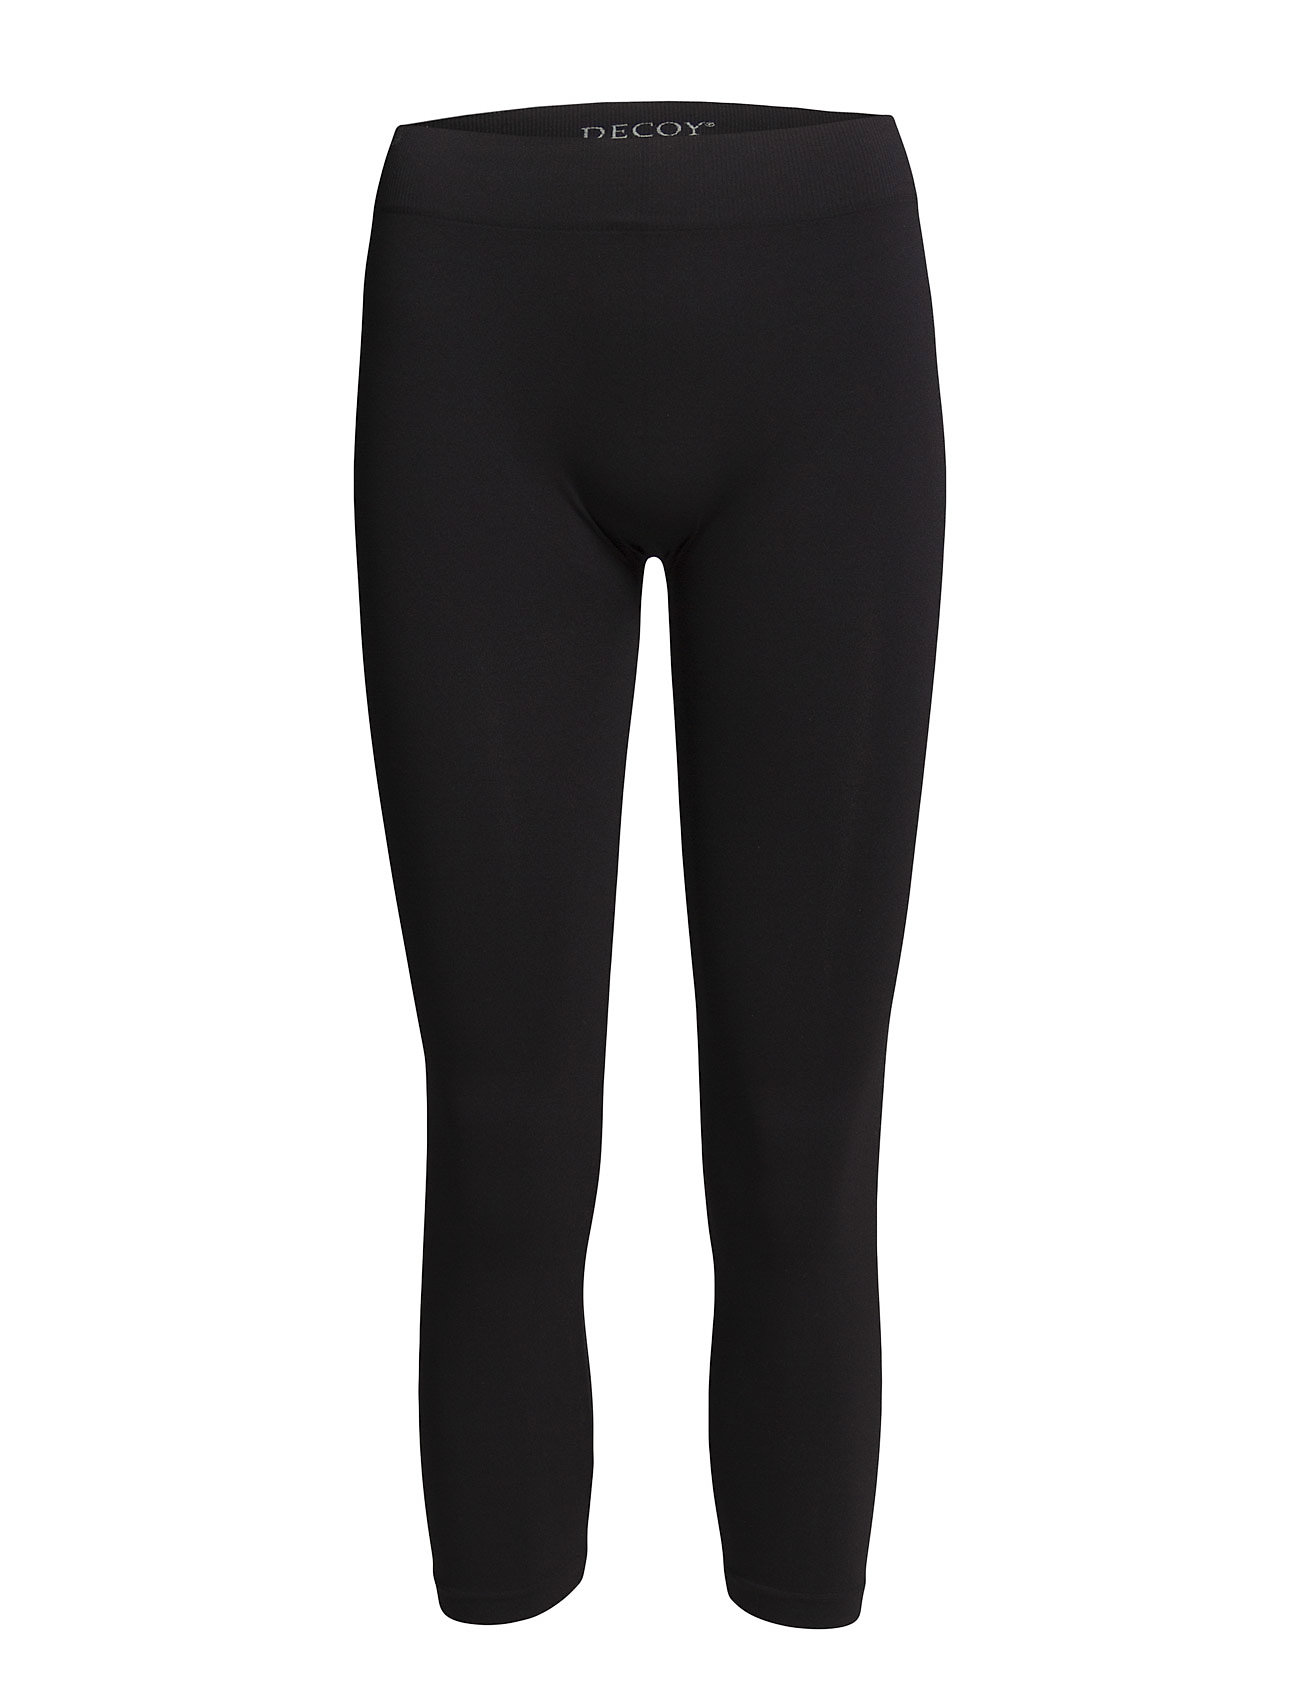 Decoy Seamless capri leggings - BLACK